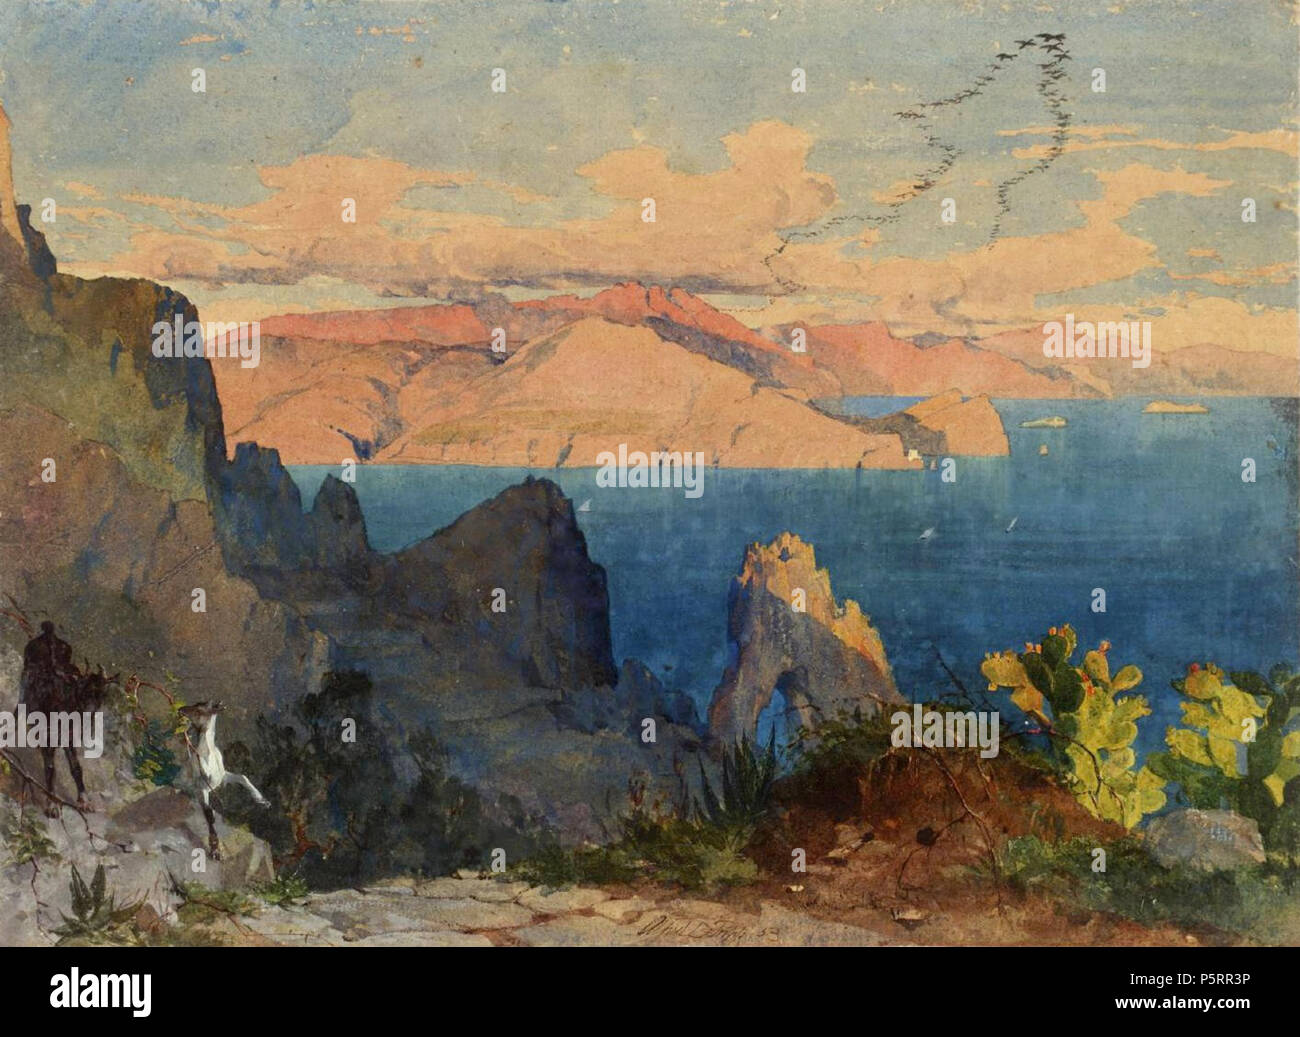 N/A. Capri . 1853. Alfred Downing Fripp (1822–1895) 269 Capri 1853 by Alfred Downing Fripp - Stock Image